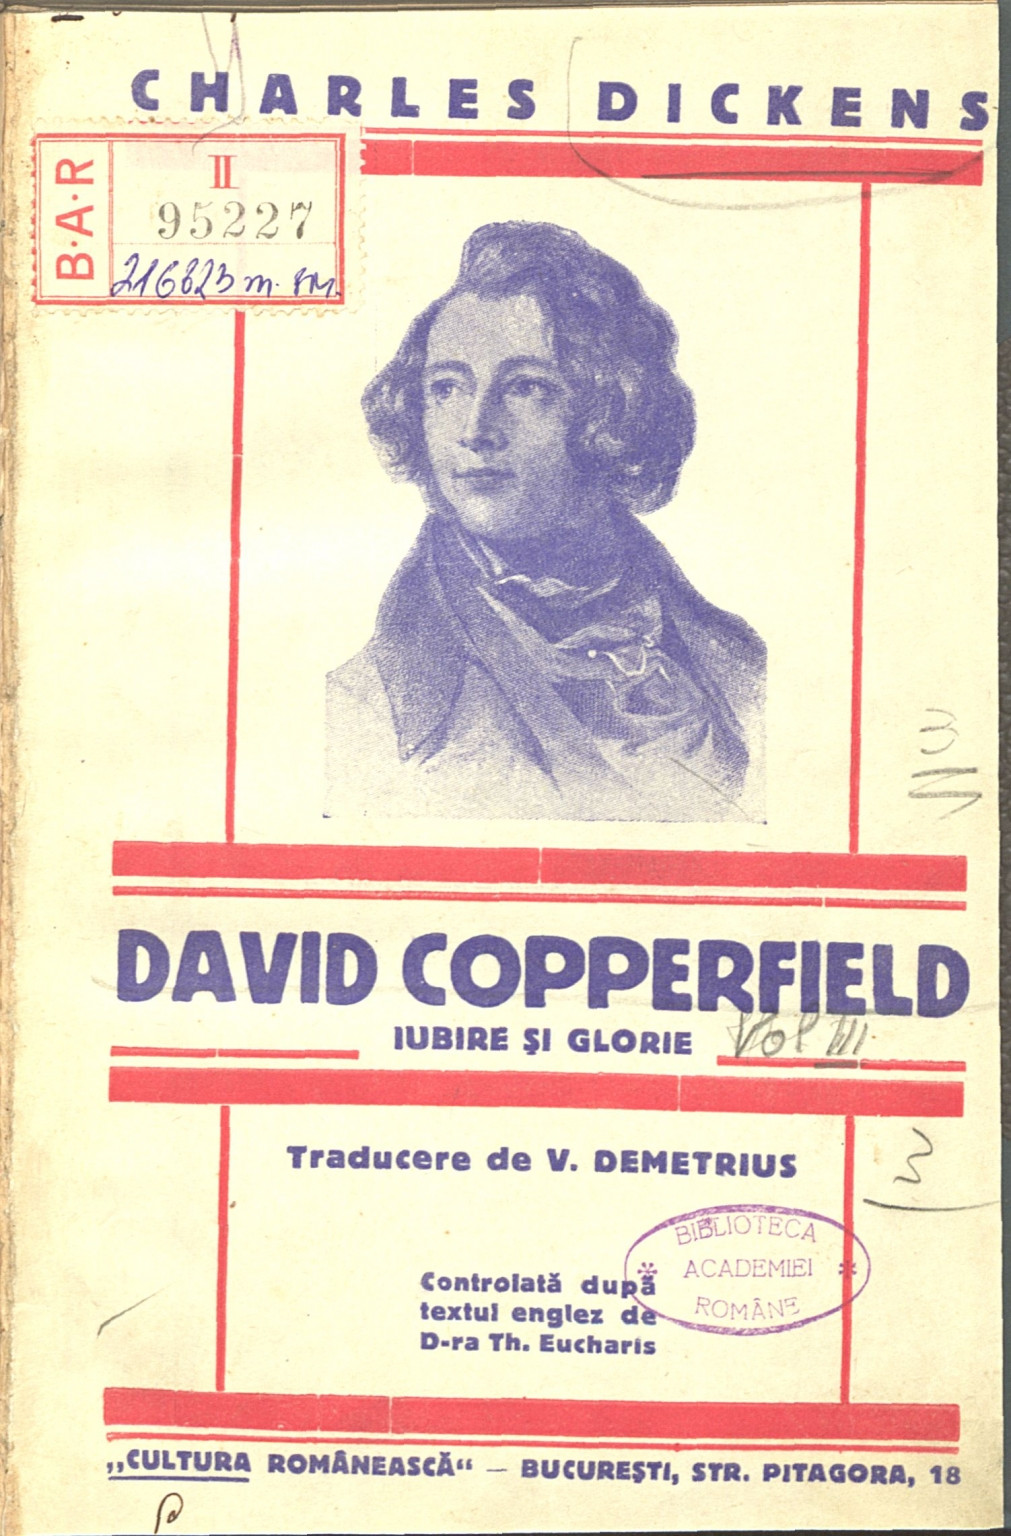 David Copperfield Charles Dickens Vol III